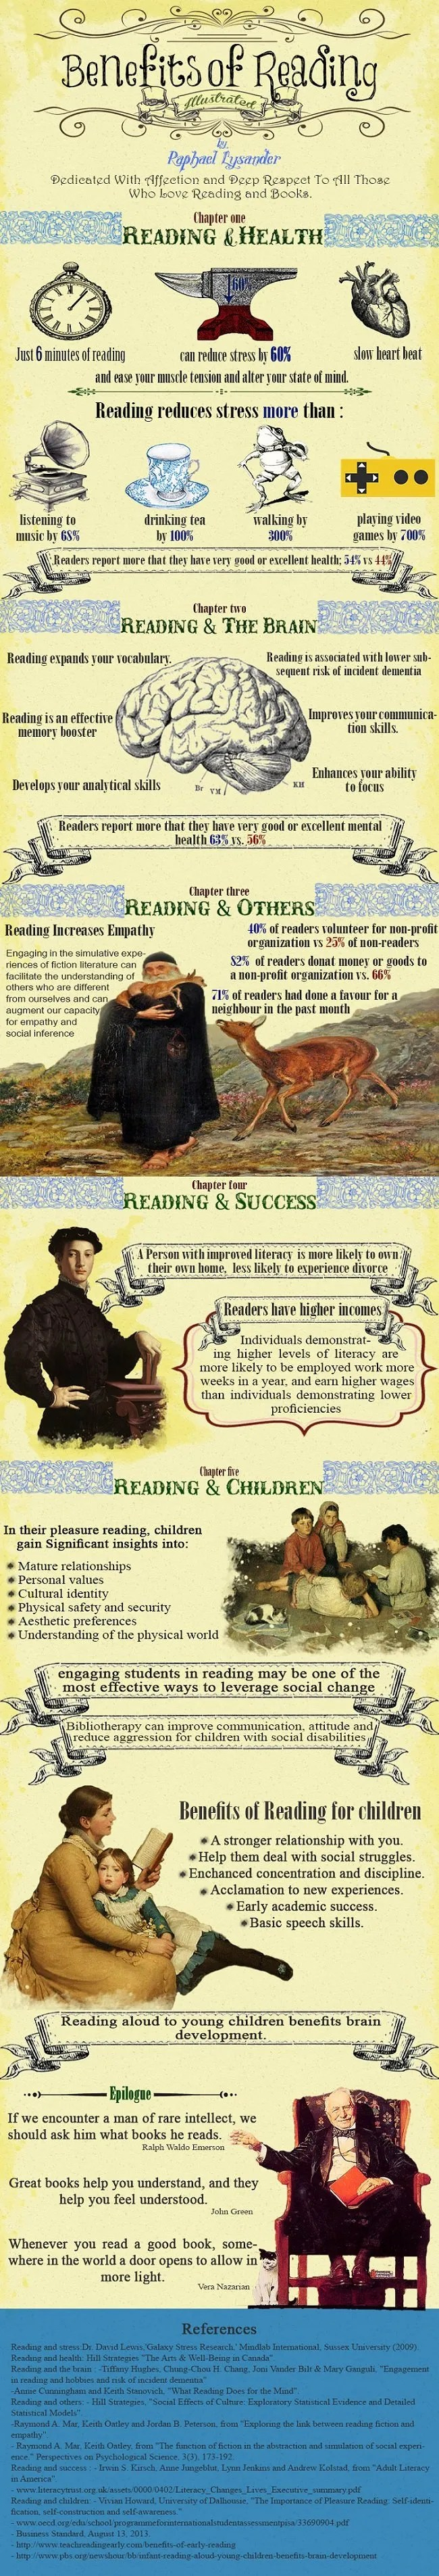 5-benefits-of-reading